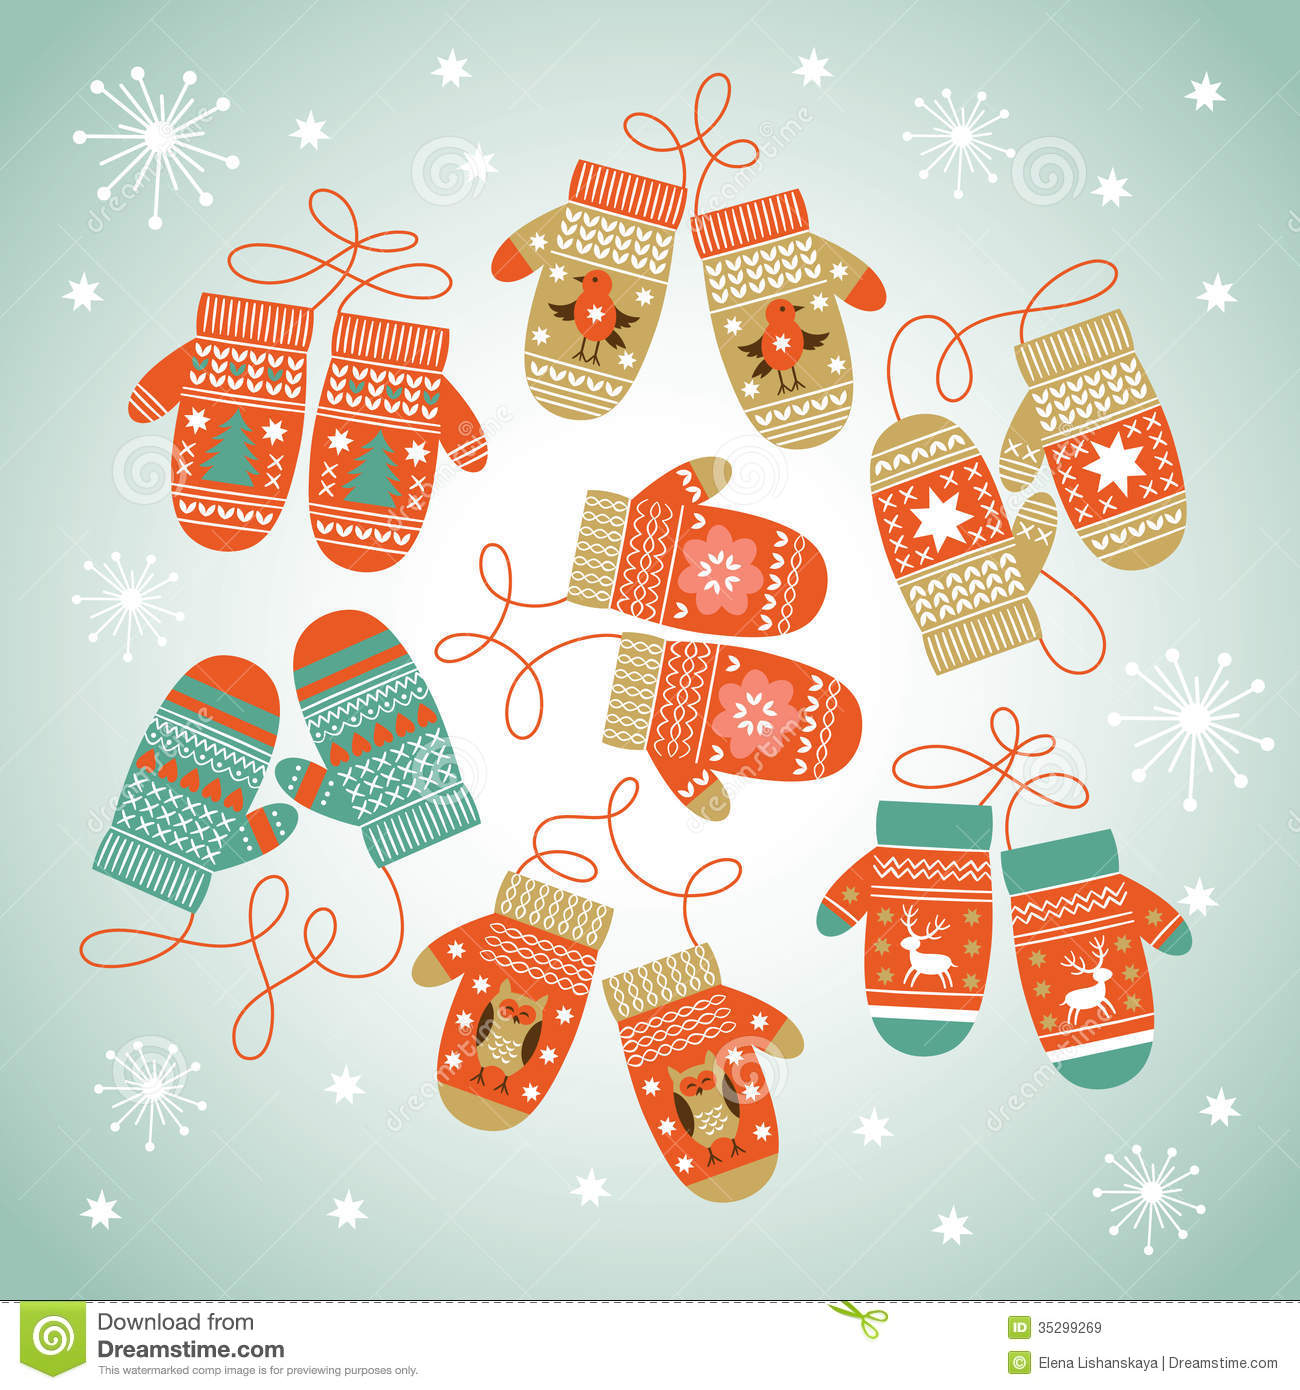 Card Design With Christmas Mittens Stock Vector - Image ...